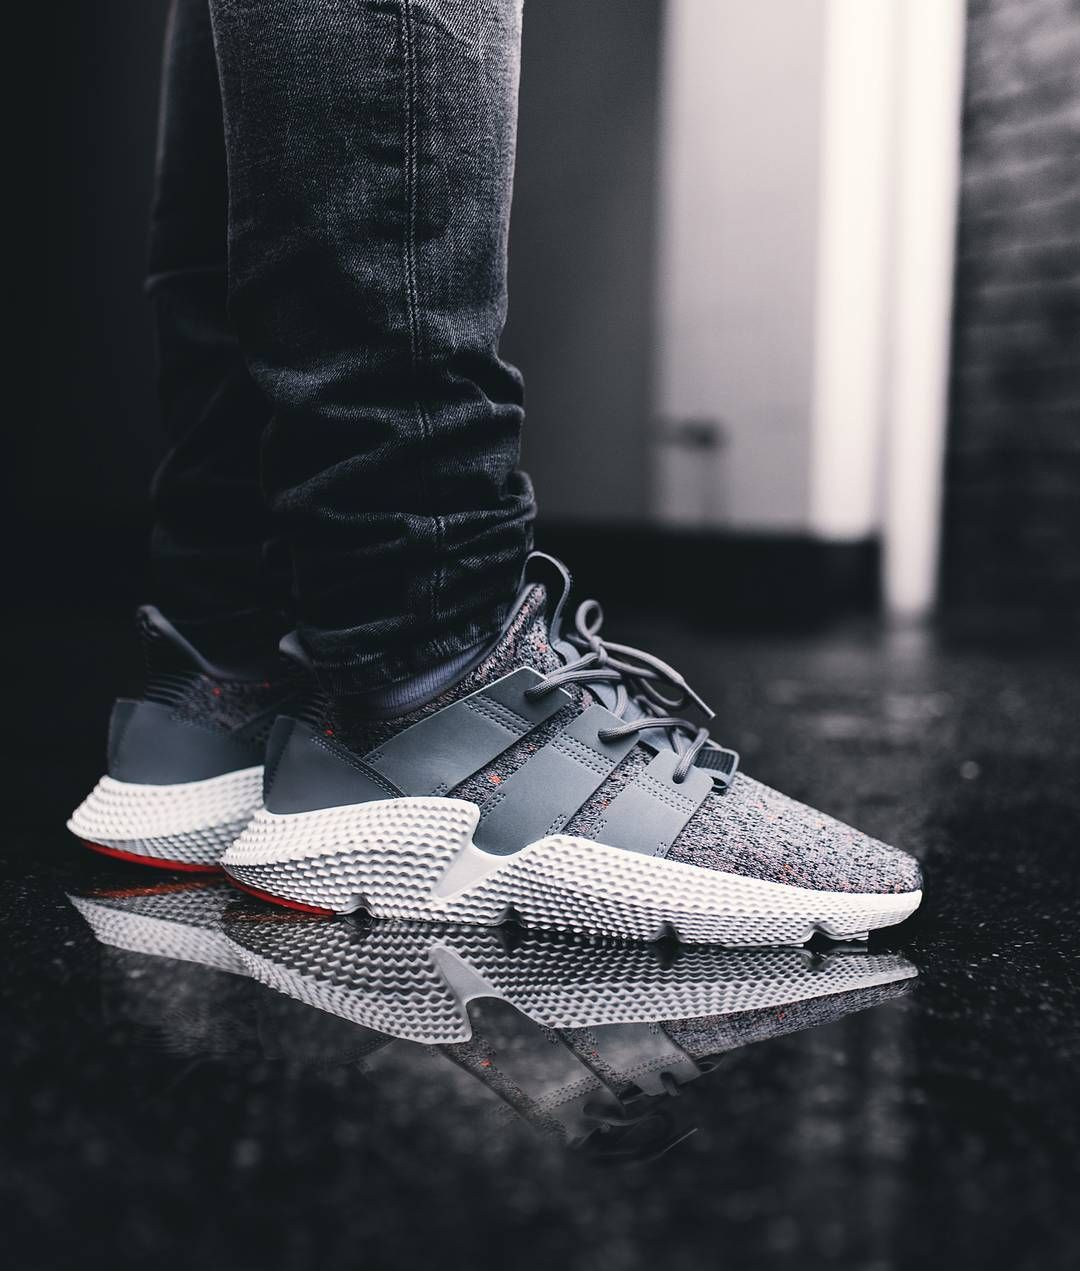 3f6830dbbec Adidas Prophere Grey   White   Solar Red